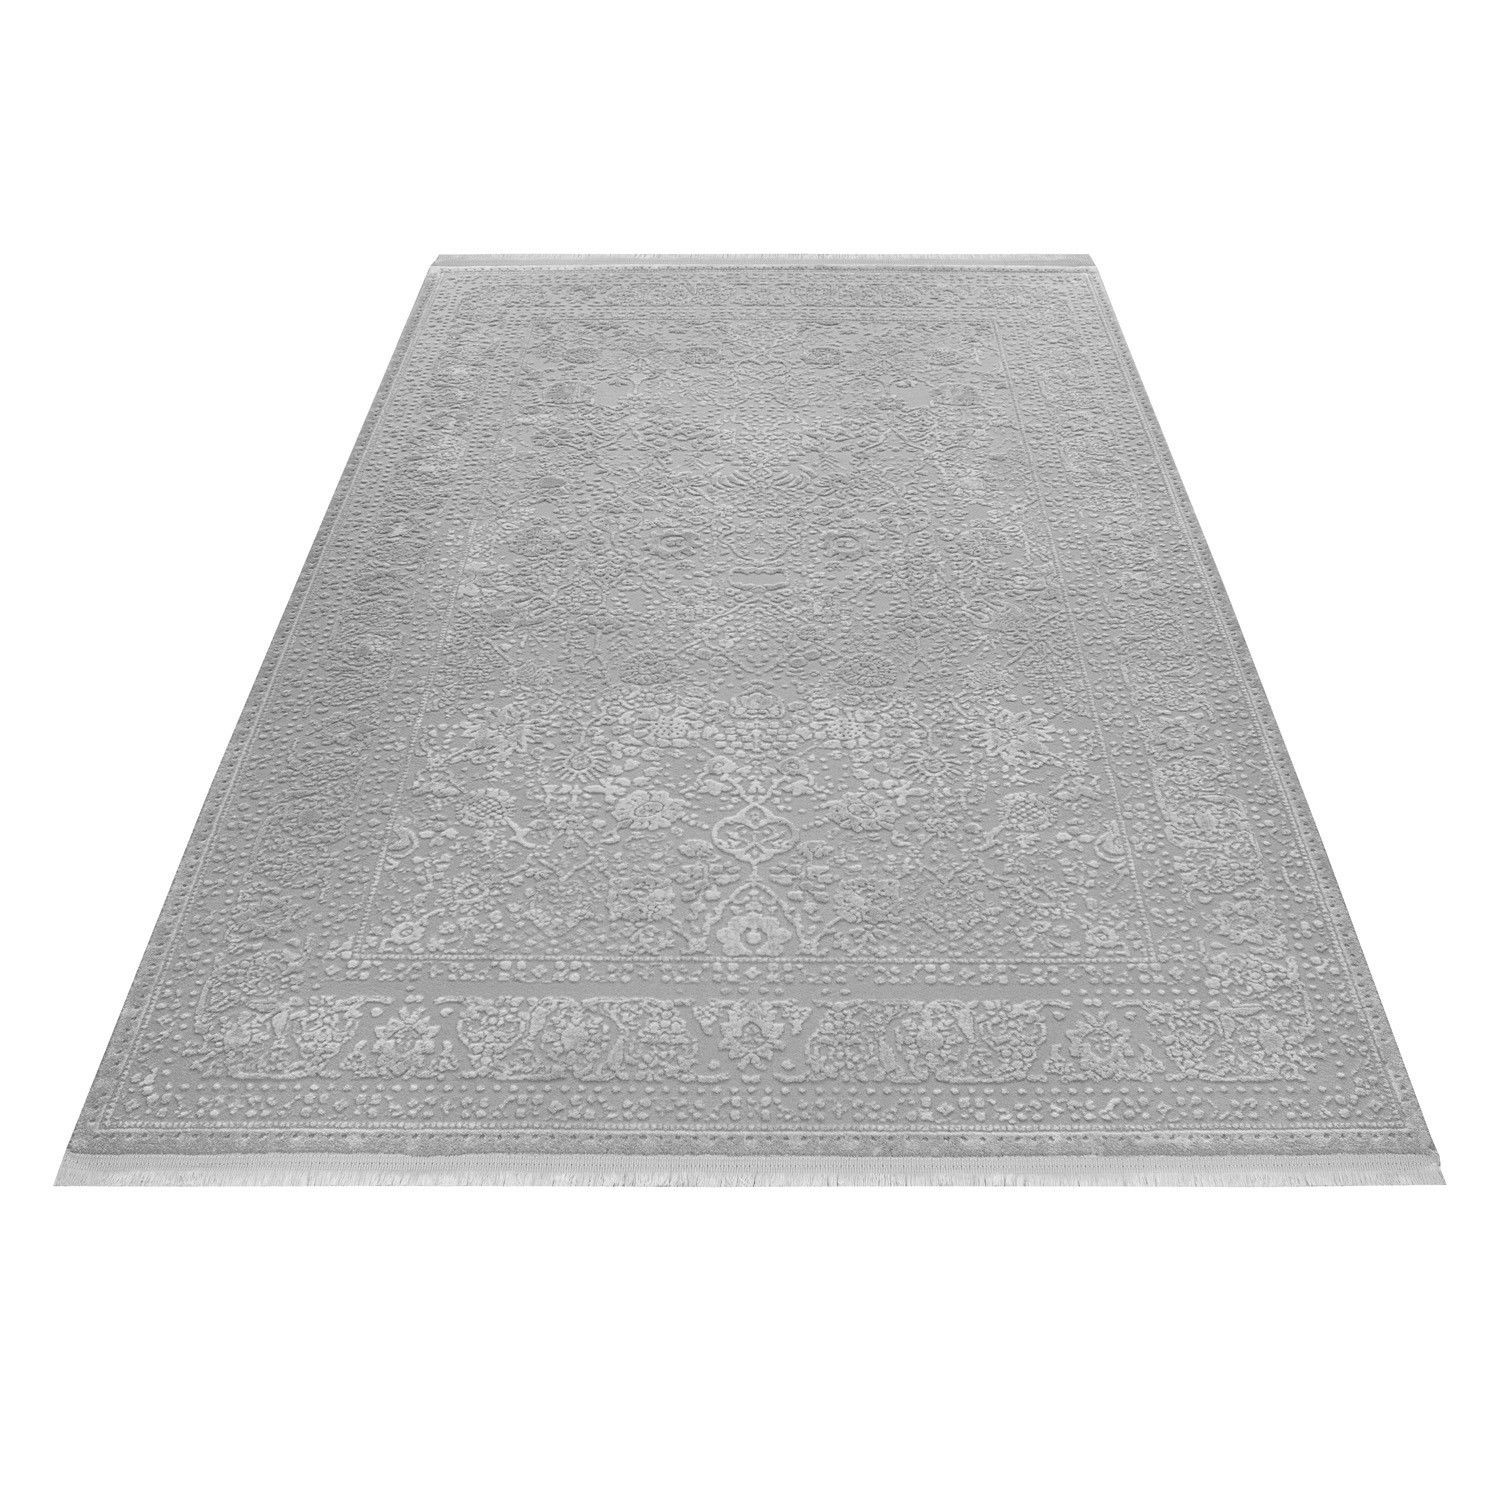 tapis gris style baroque acrylique haut qualite naturel brillant sencha 8 tapis beige tapis. Black Bedroom Furniture Sets. Home Design Ideas